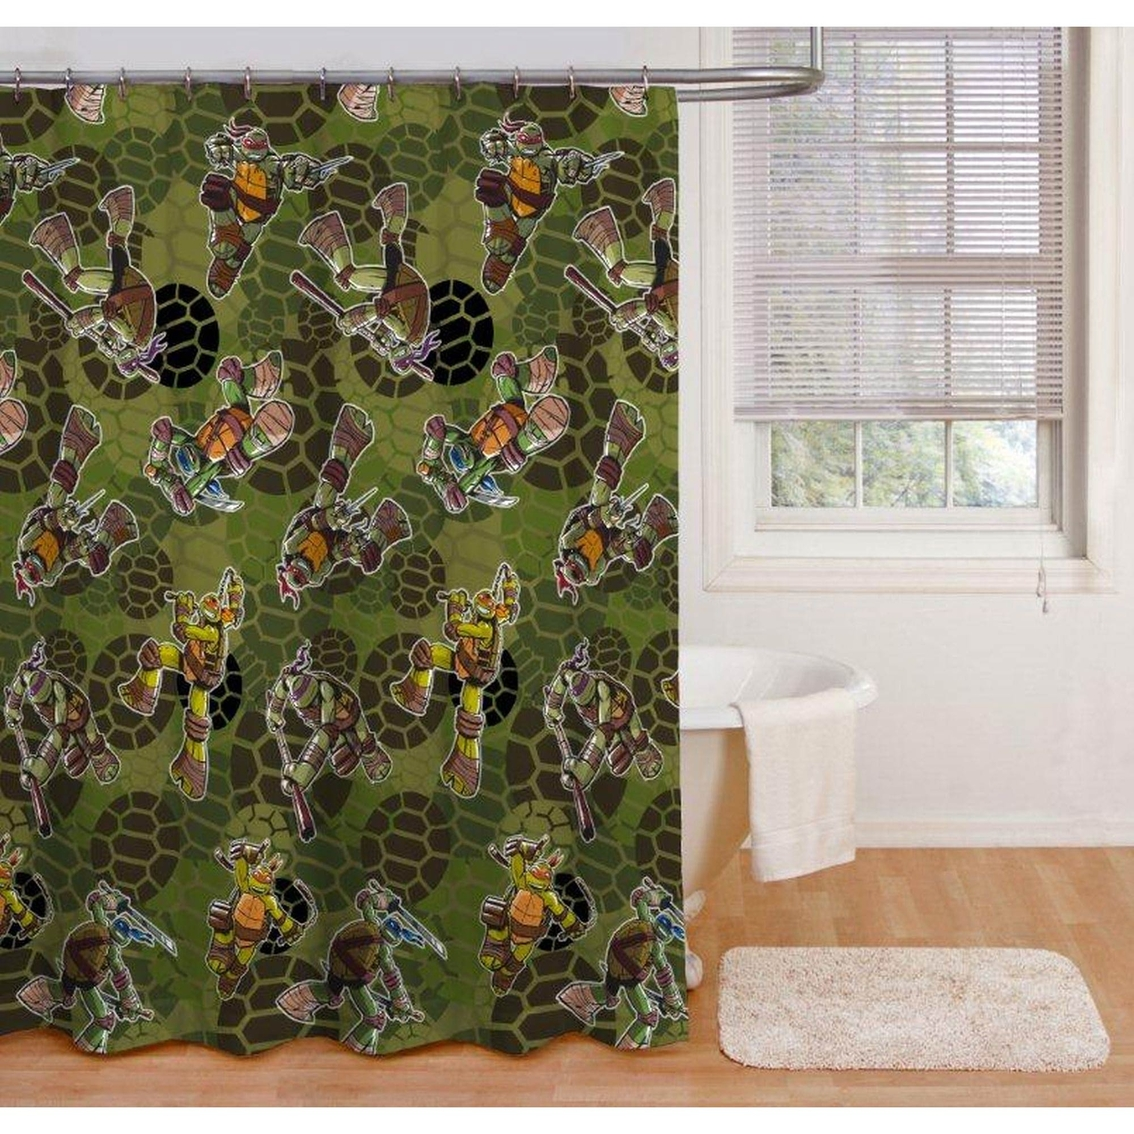 Nickelodeon Teenage Mutant Ninja Turtles Shower Curtain